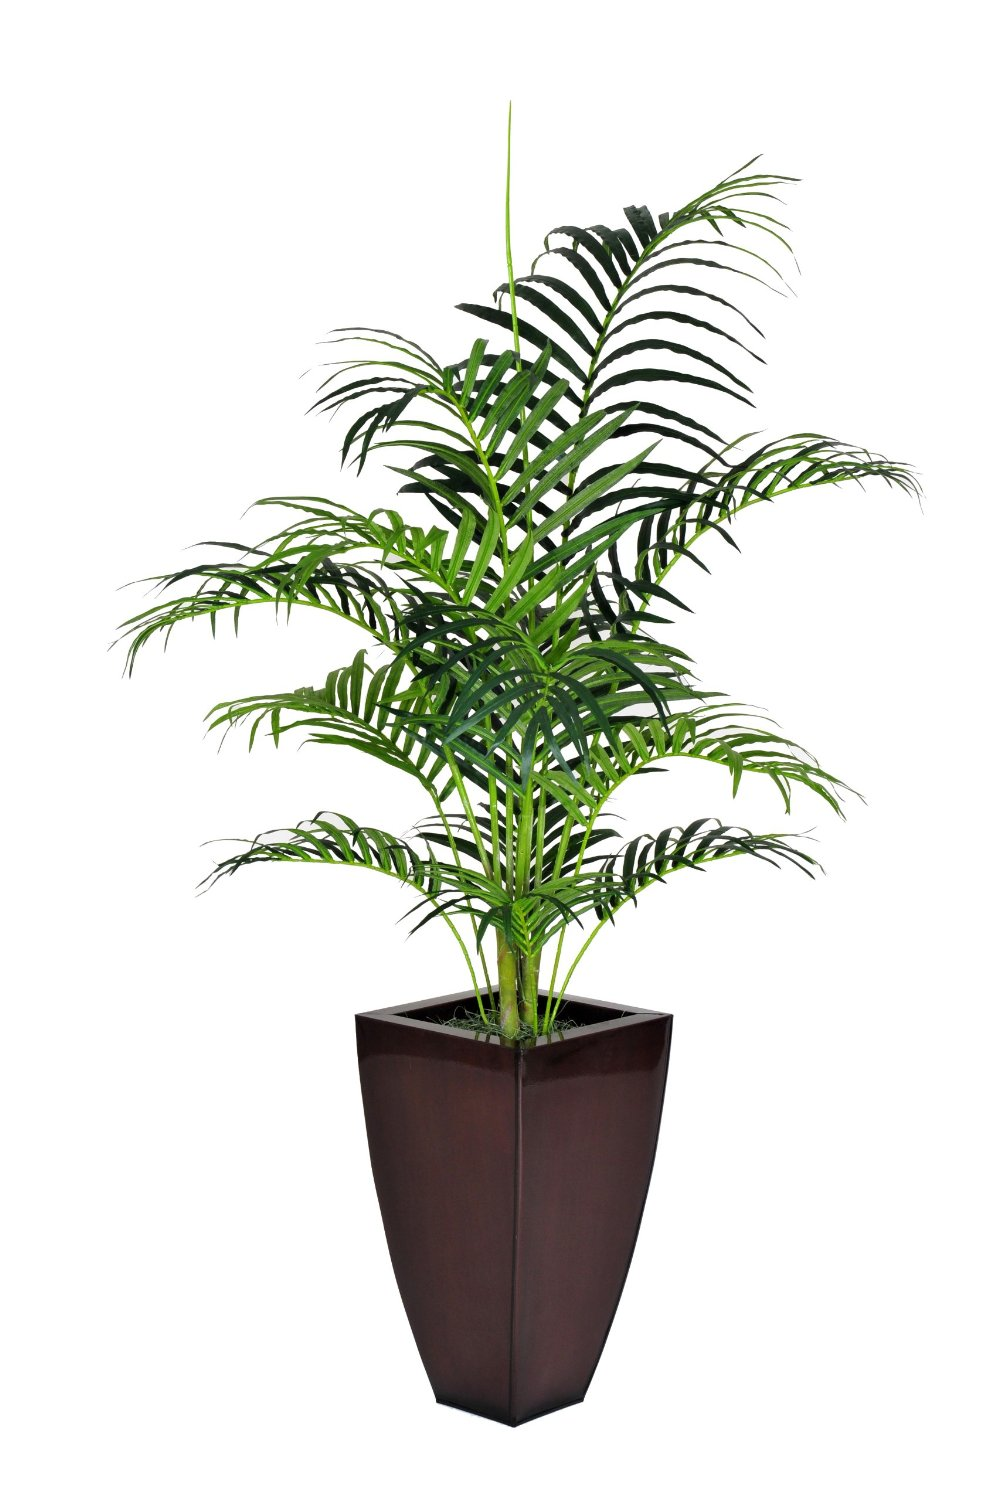 Cheap Planter Flowers Find Planter Flowers Deals On Line At Alibaba